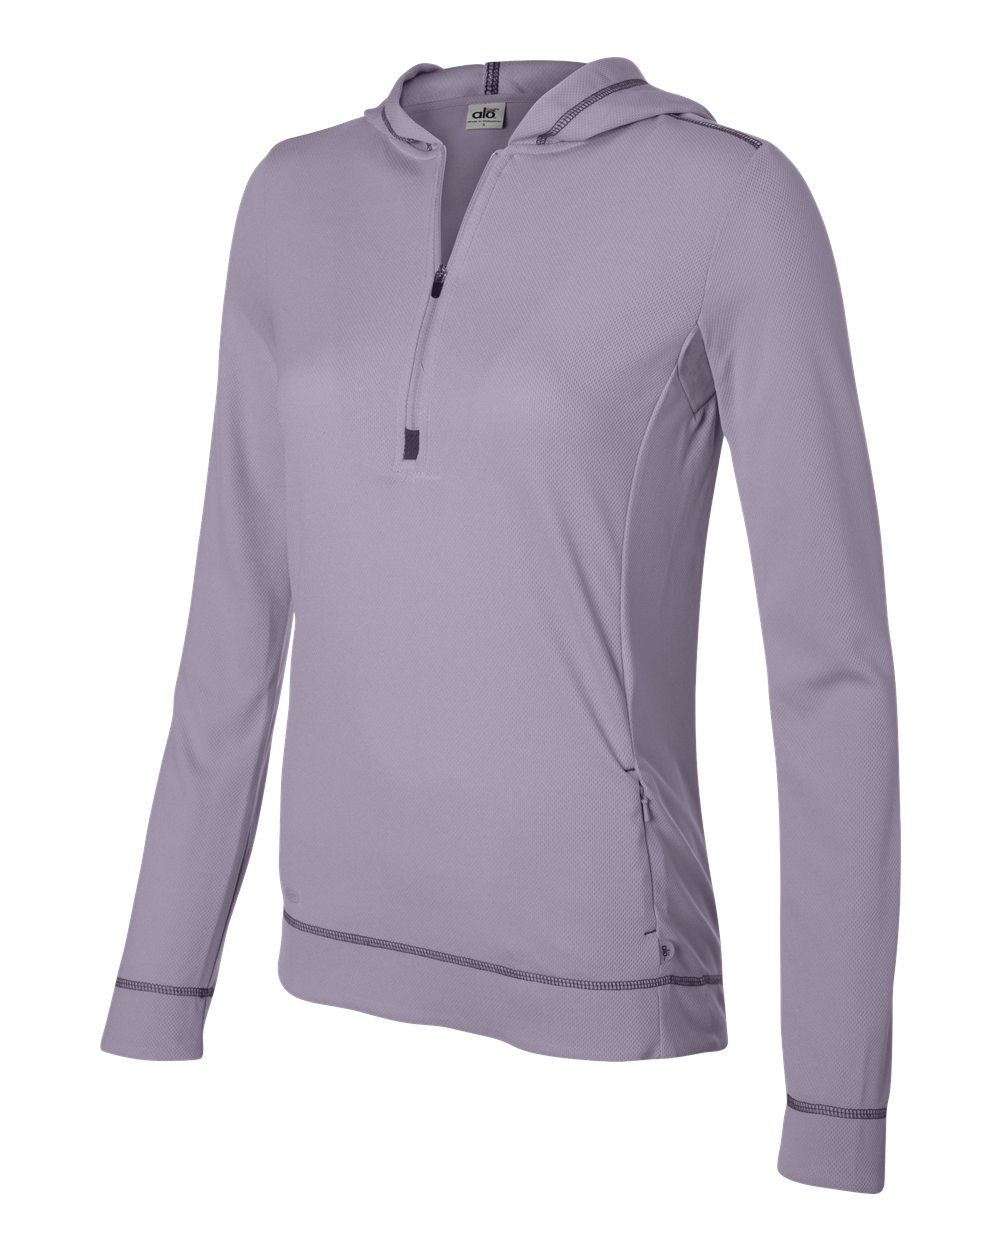 Alo Womens Performance Half Zip Hoodie